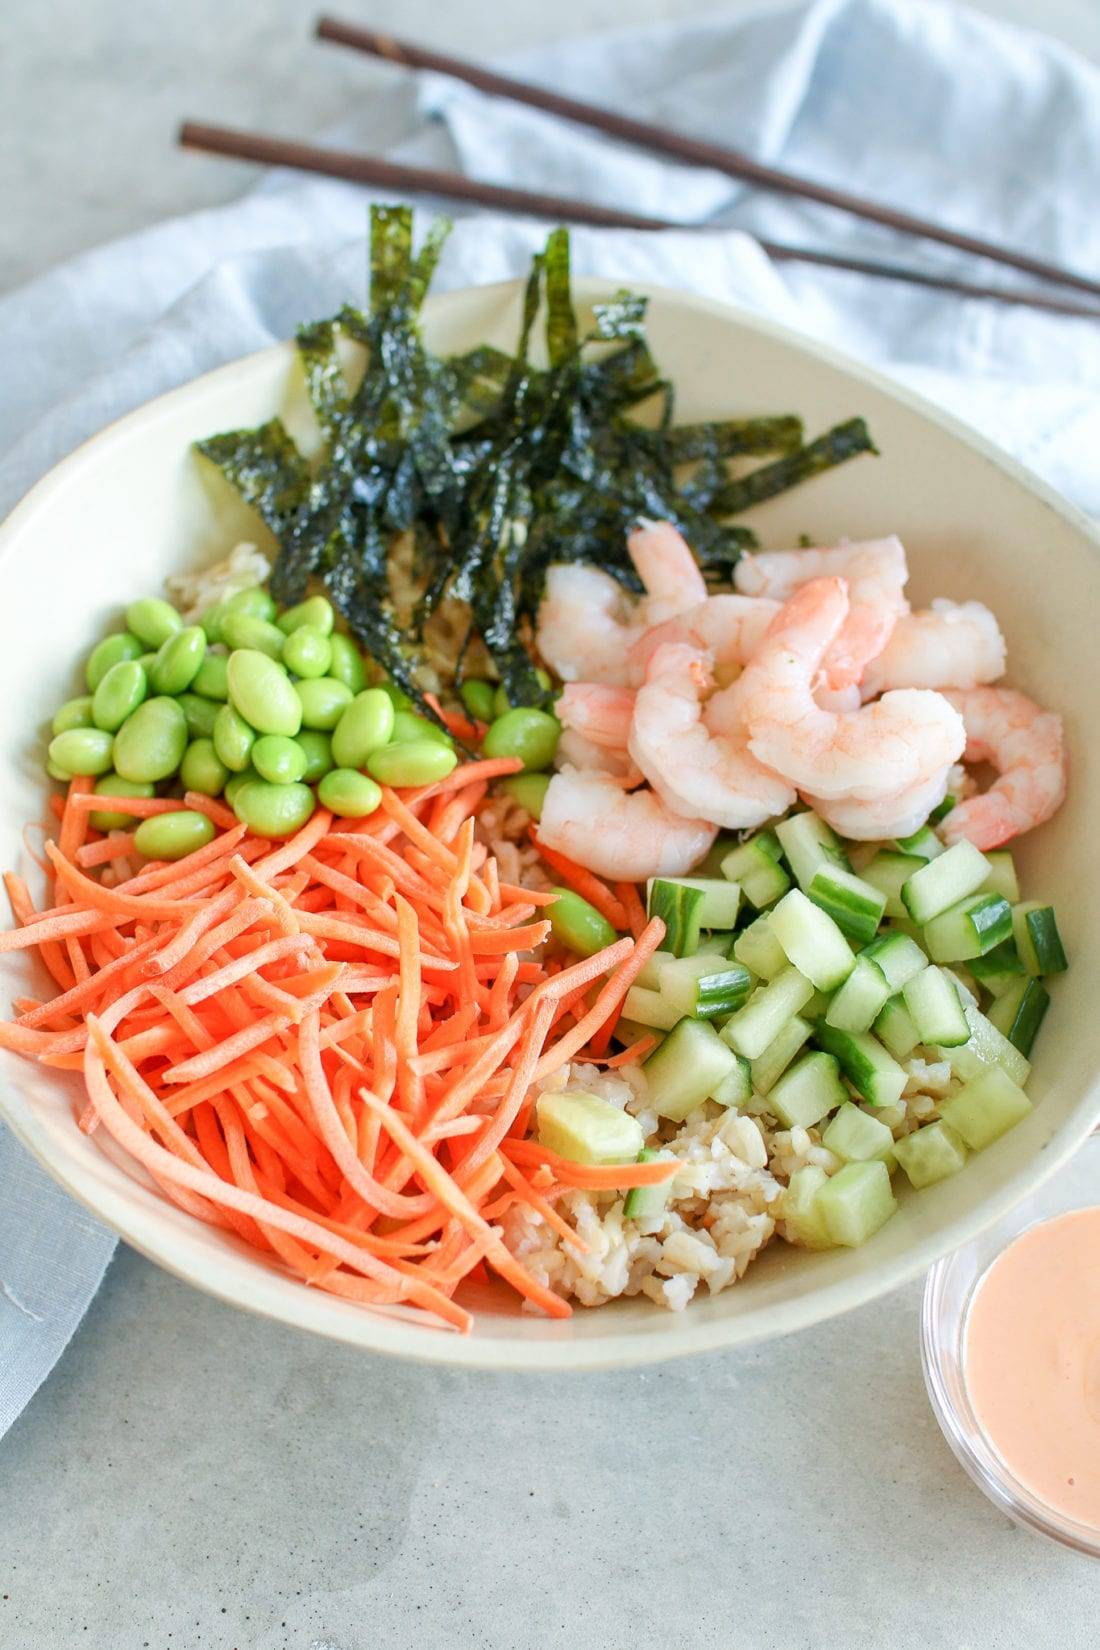 Get your sushi fix in this easy shrimp sushi bowl that's ready in 5 minutes!